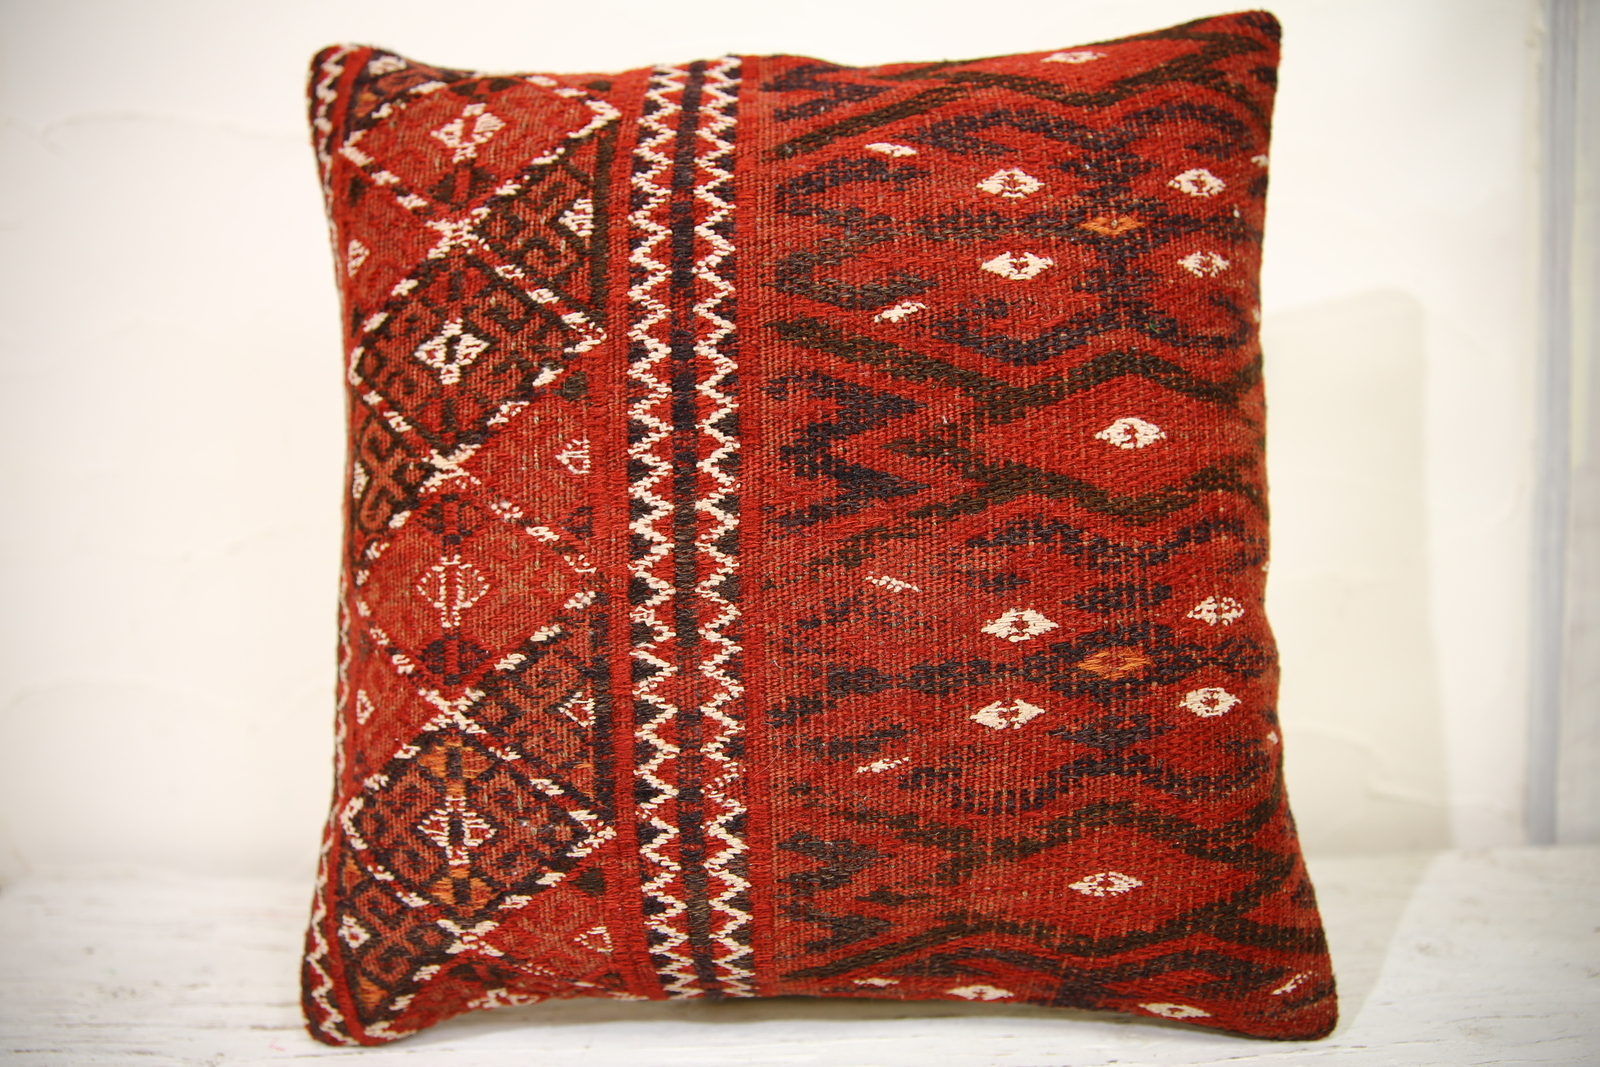 Kilim Pillows | 16x16 | Turkish pillows | 949 | Accent Pillows , kilim cushion